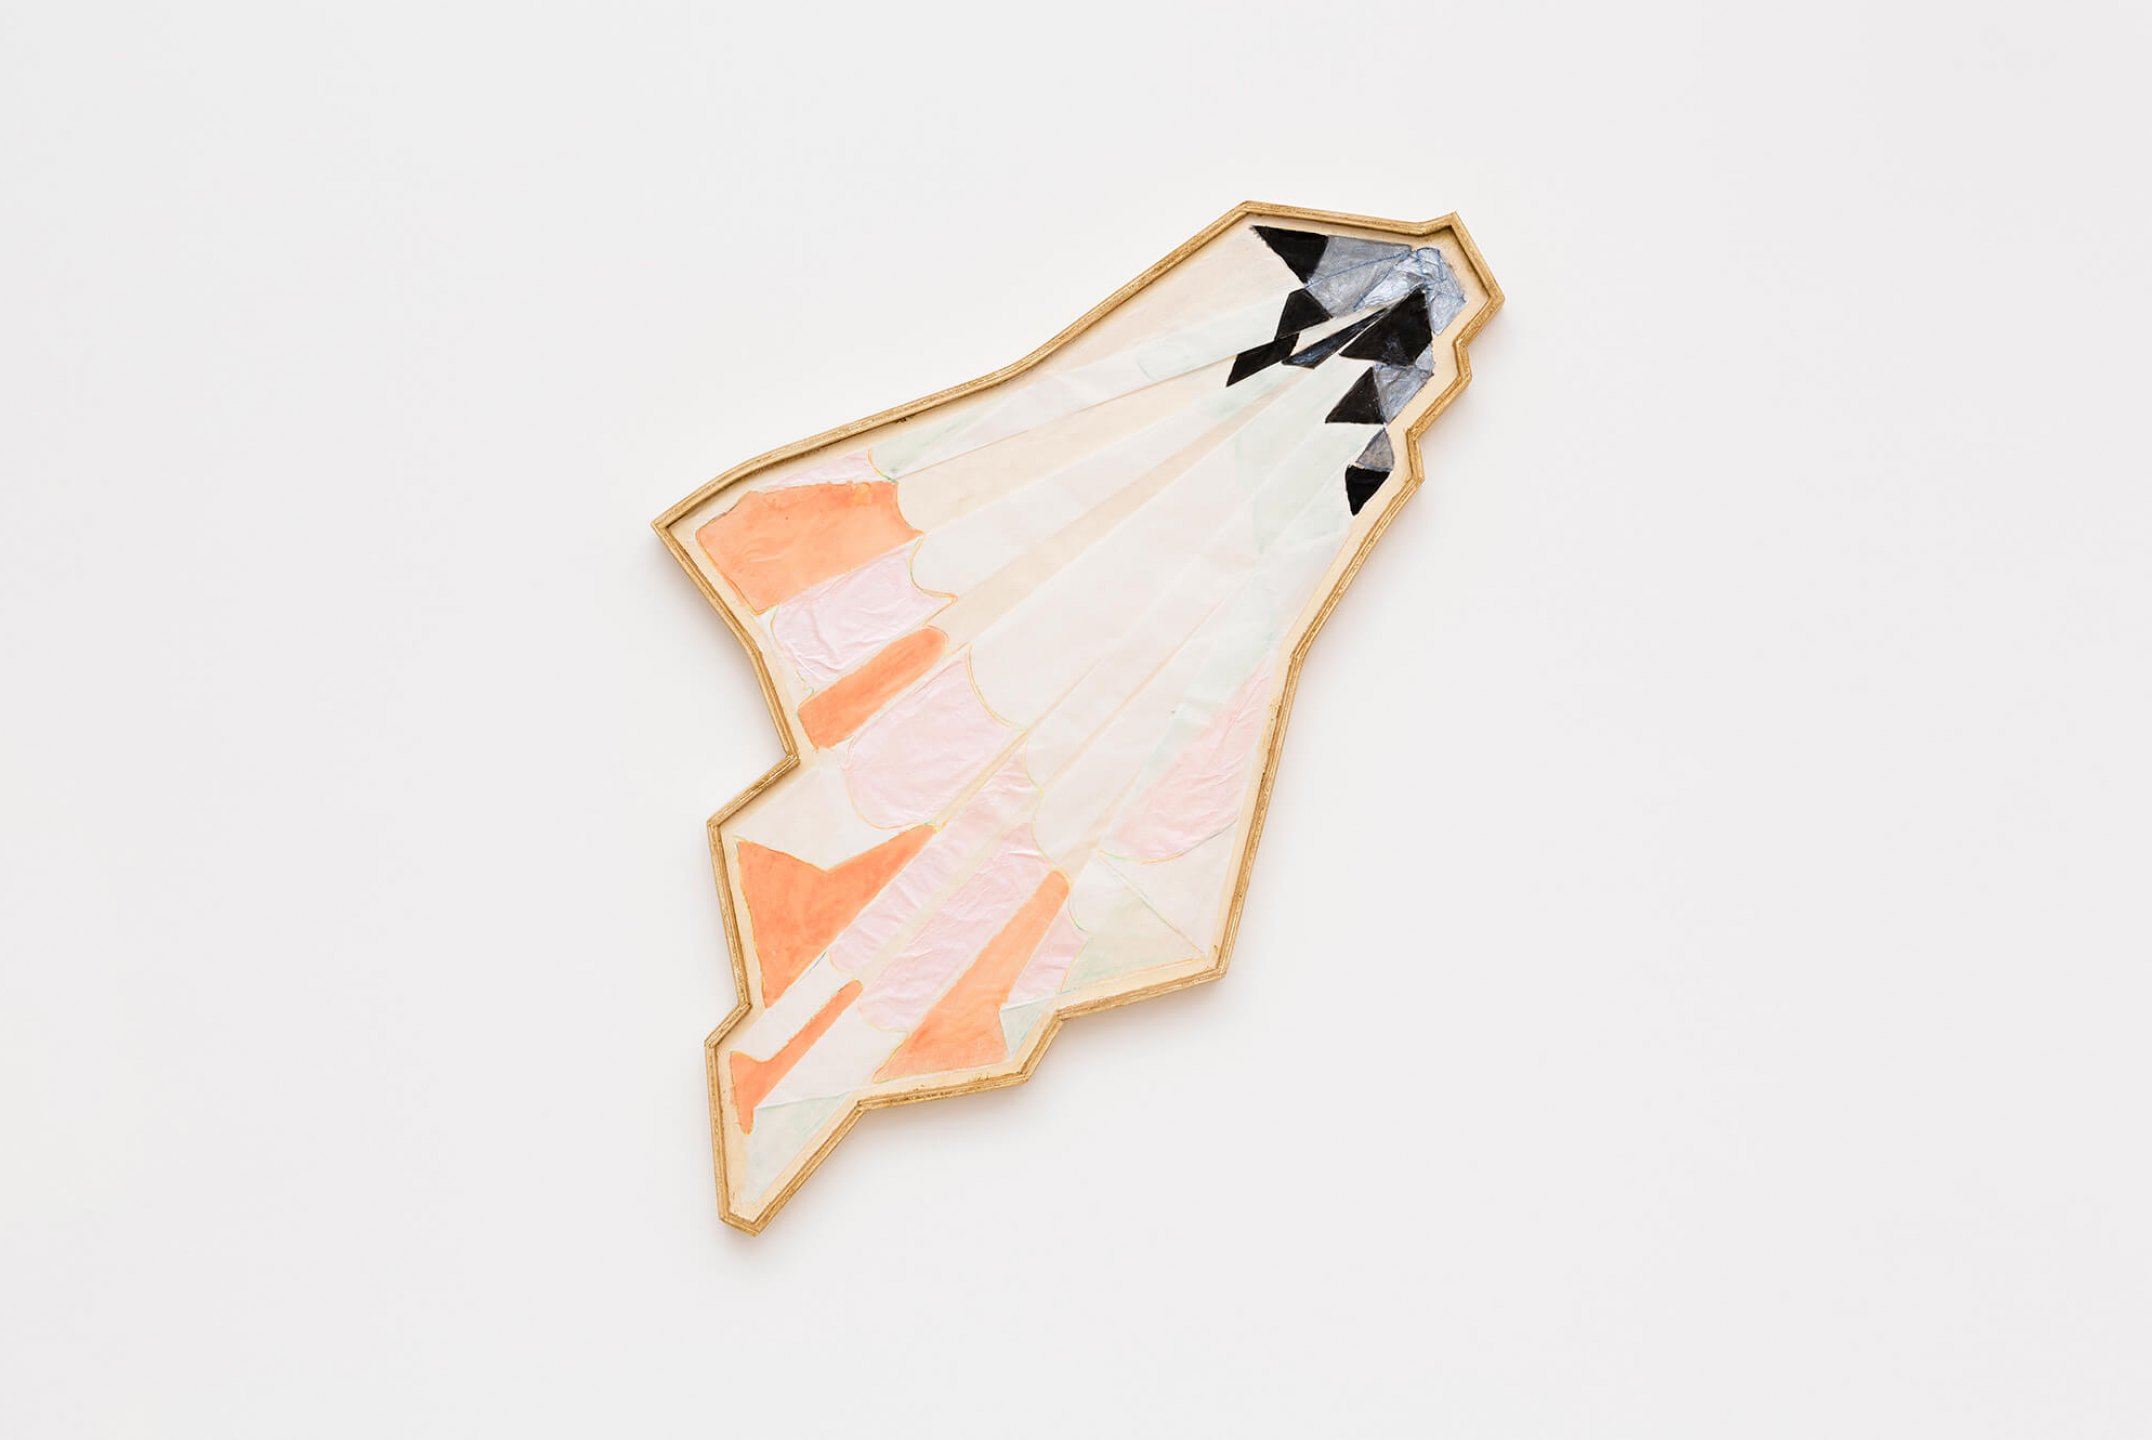 Marina Perez Simão,&nbsp;<em>Untitled,</em>&nbsp;2015, acrylic, color pencil and iridescent pigment on&nbsp; paper assembled on wood, 99,5 × 57,5&nbsp;× 4,5&nbsp;cm&nbsp; - Mendes Wood DM